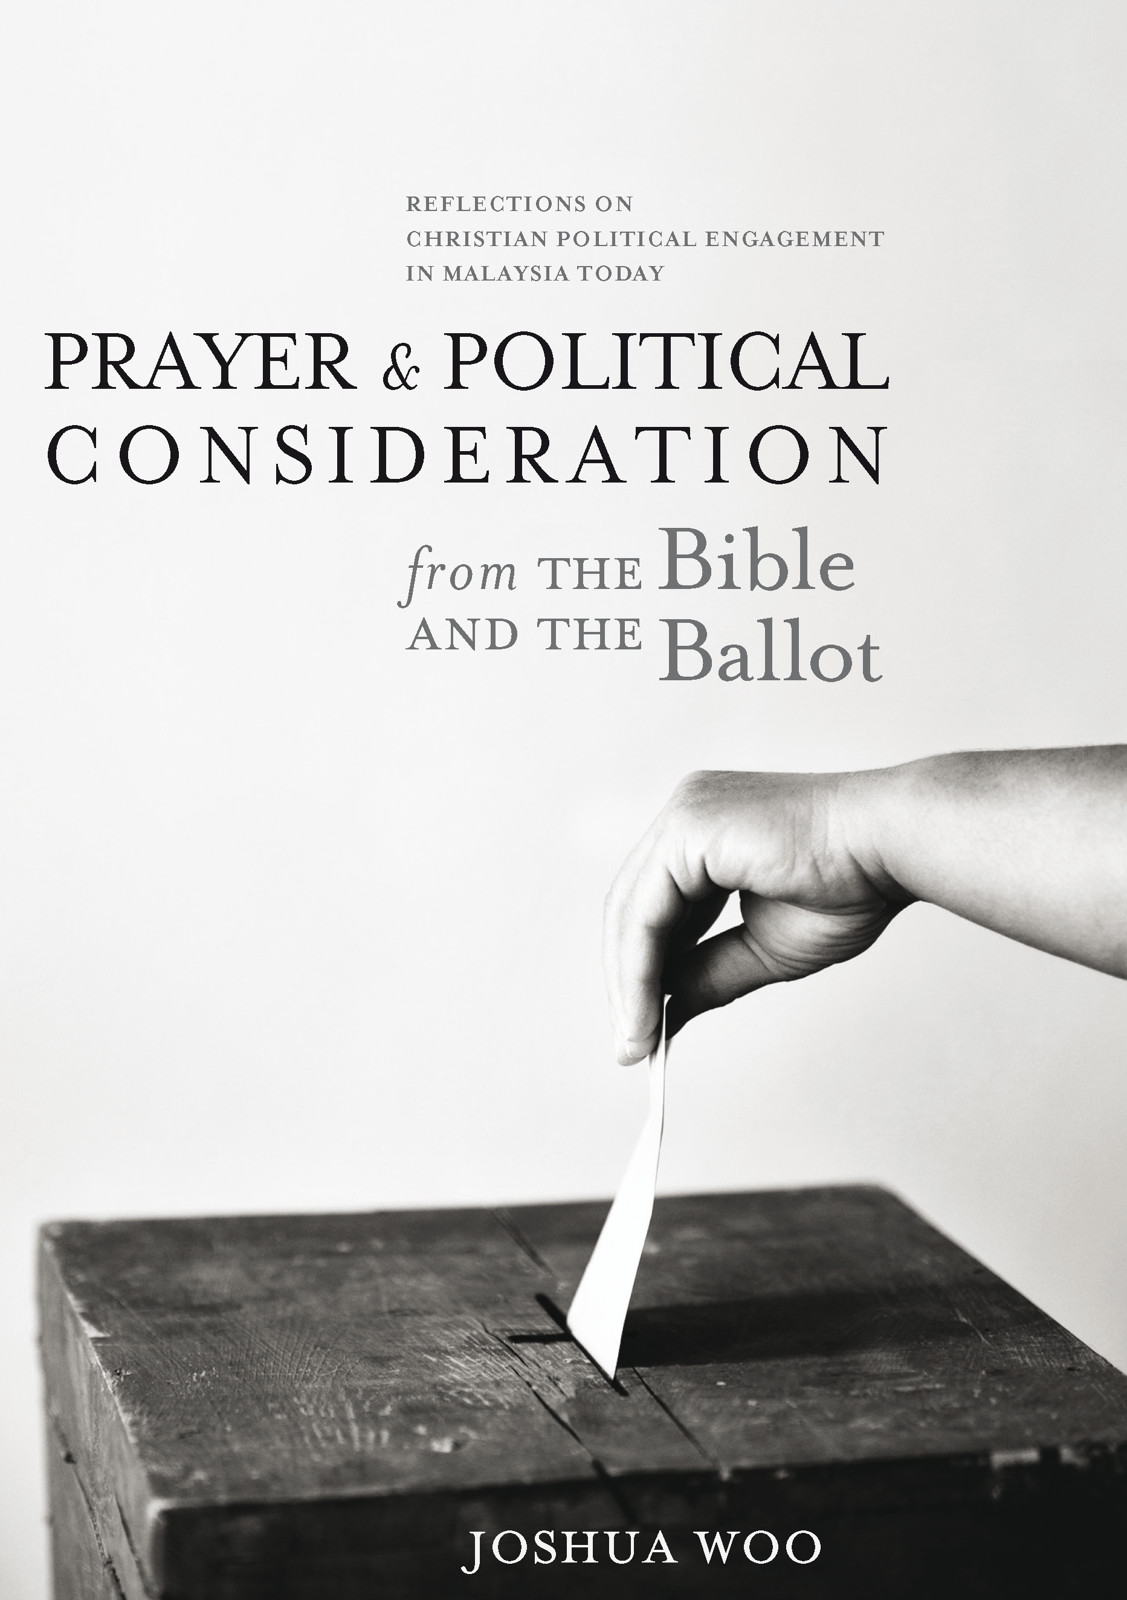 Prayer & Political Consideration